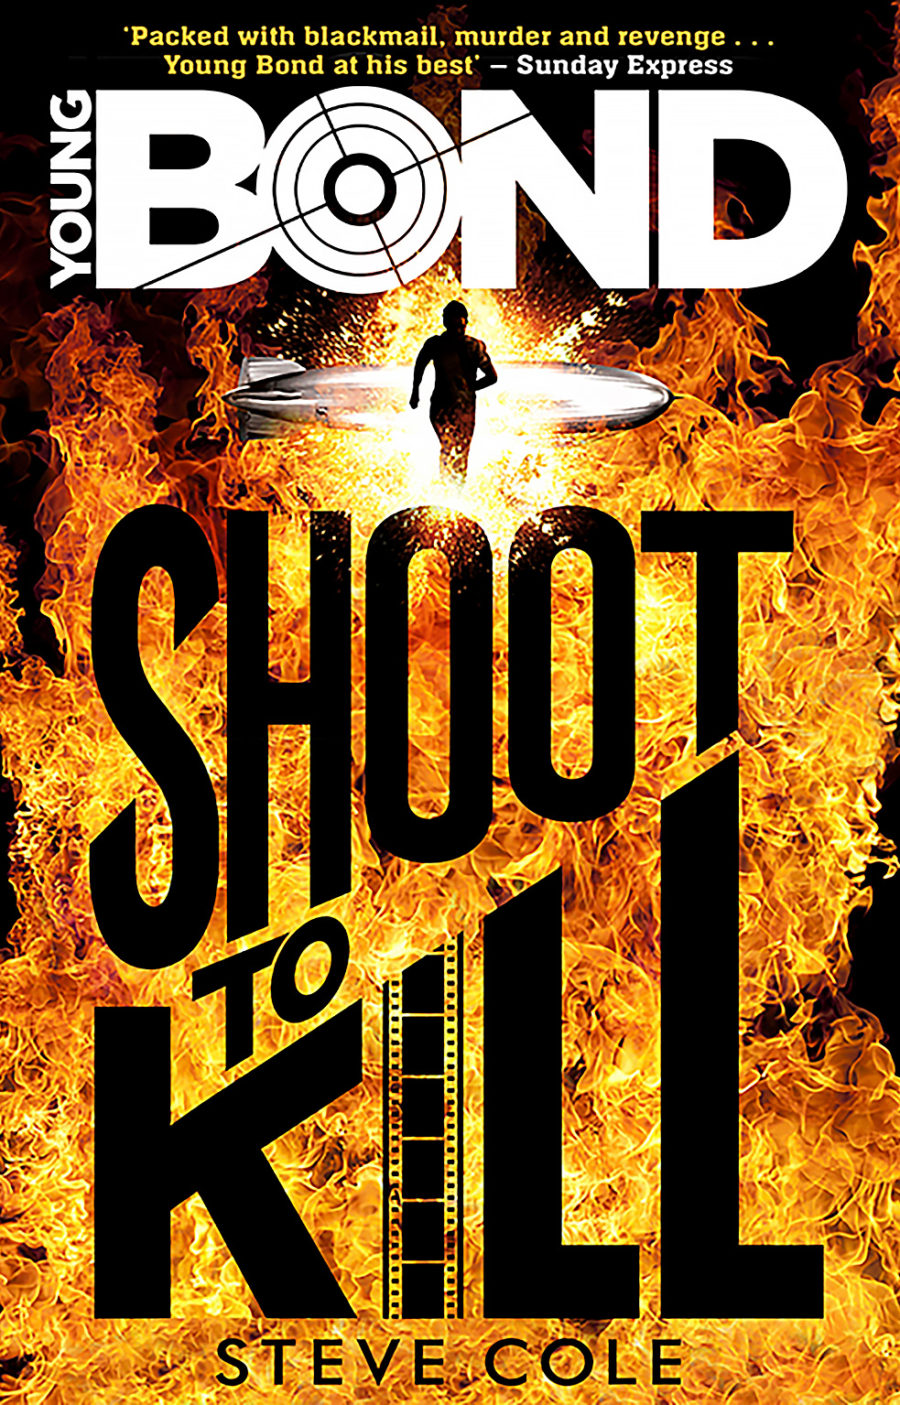 File:Shoot to Kill paperback.jpg